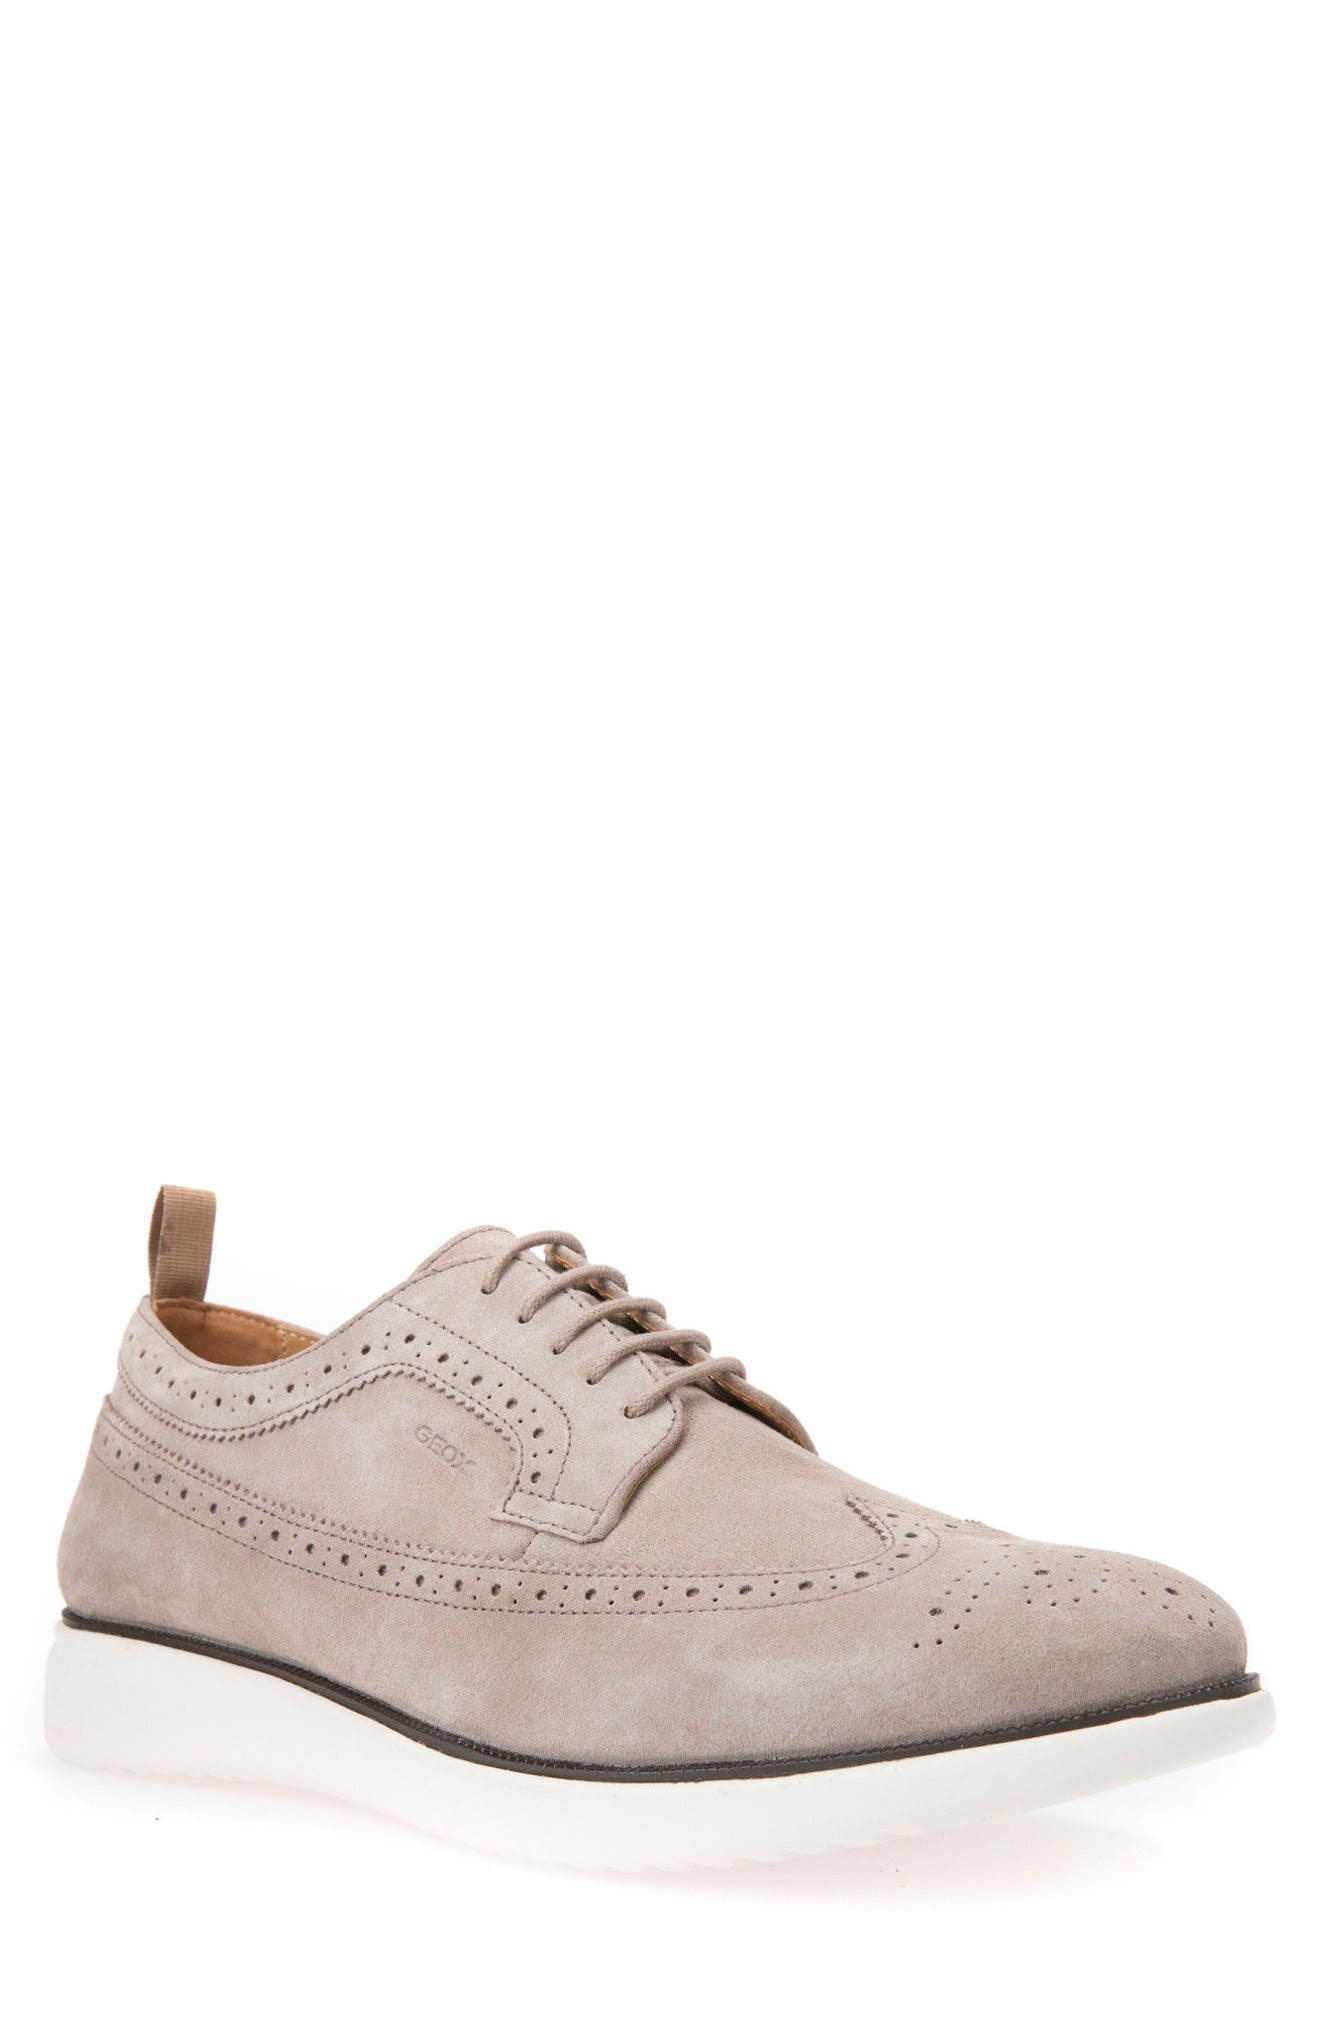 Winfred 2 Wingtip,                         Main,                         color, Taupe Suede